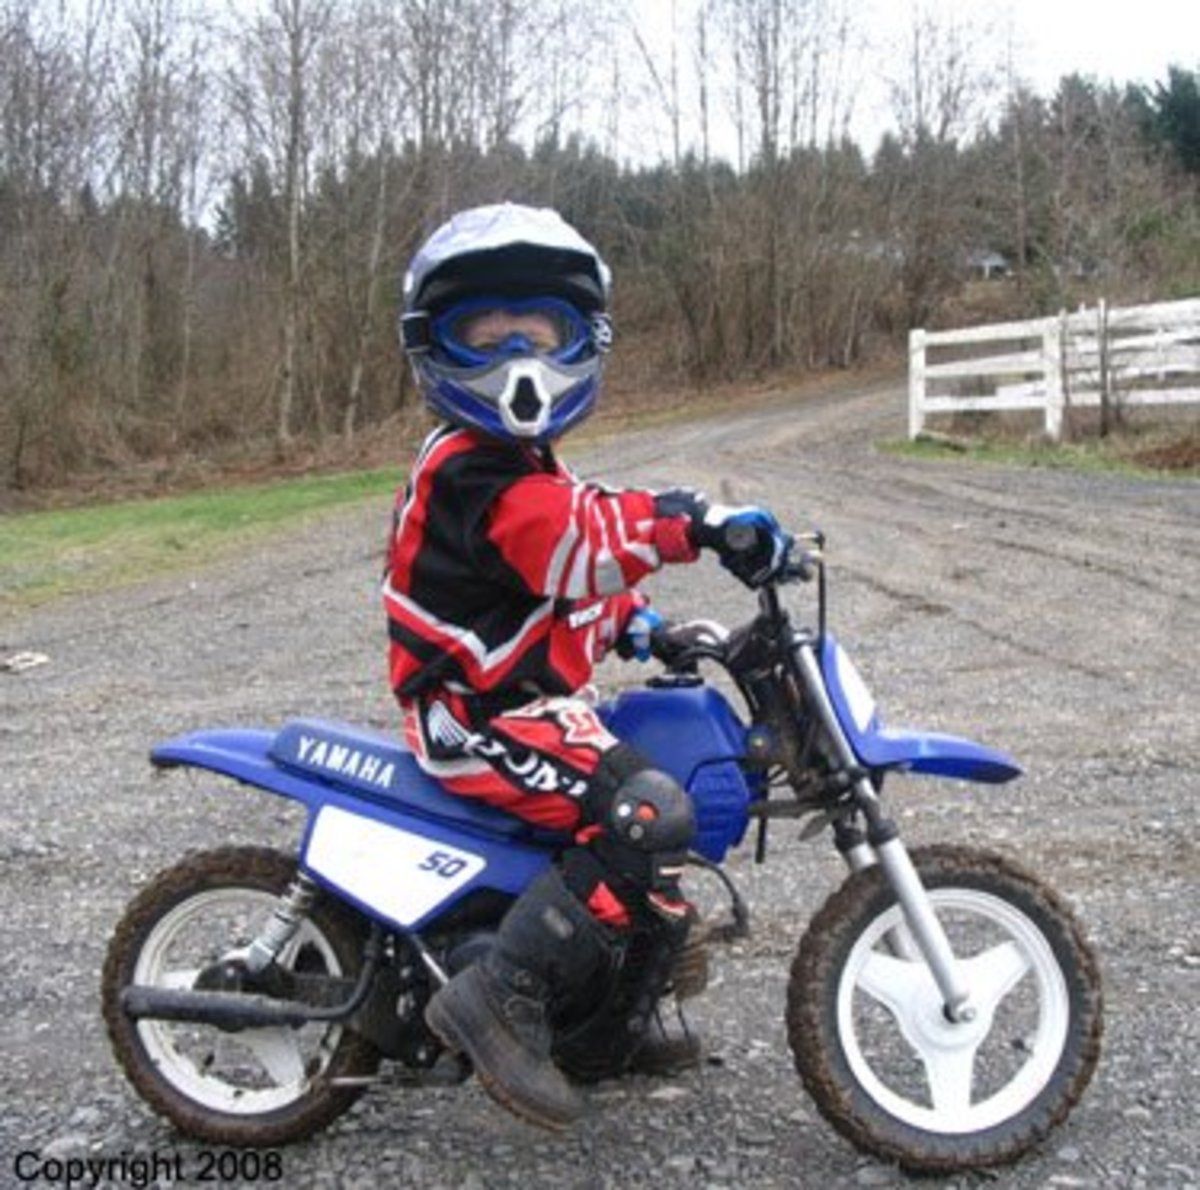 Dirt Bikes For Big Guys started racing dirt bikes